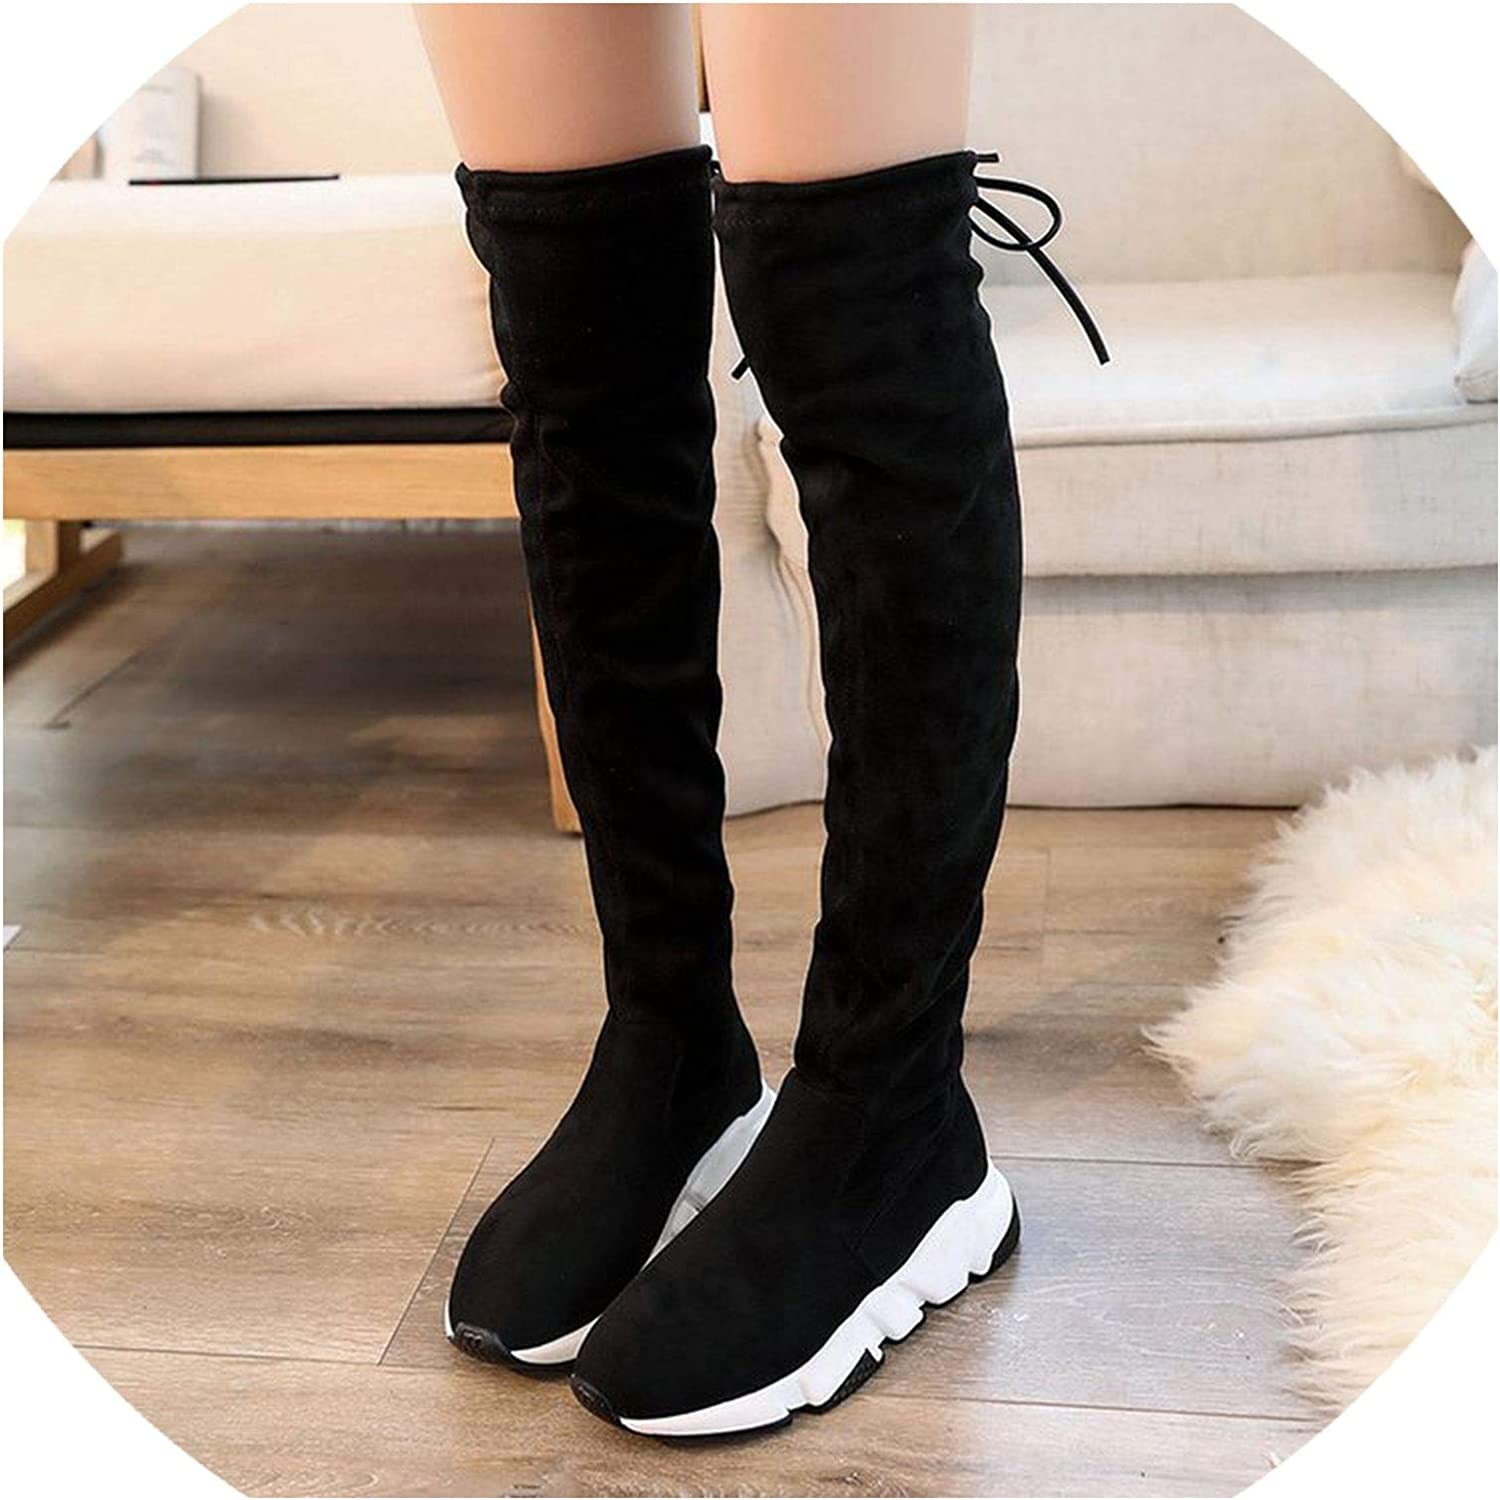 2018 New Winter Fashion Women Over The Knee Boots Casual Sexy High Heels Women shoes